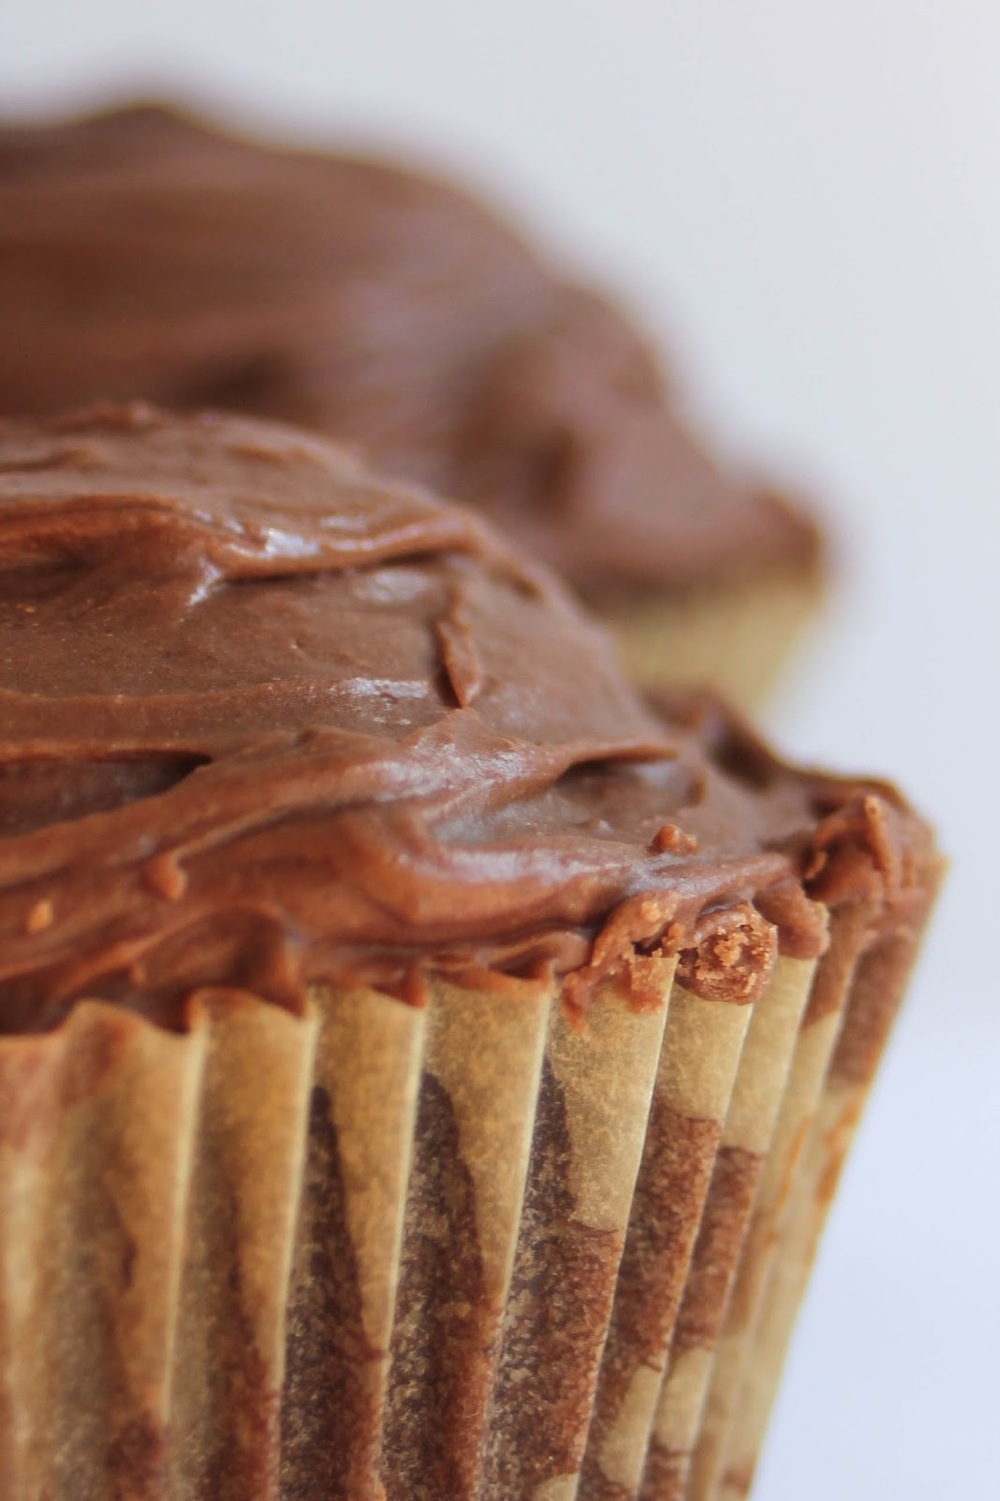 Better than a latte, Mocha Cupcakes with Salted Caramel Filling and Chocolate Fudge Frosting. #littlecitykitchen http://bit.ly/1UW8PEB